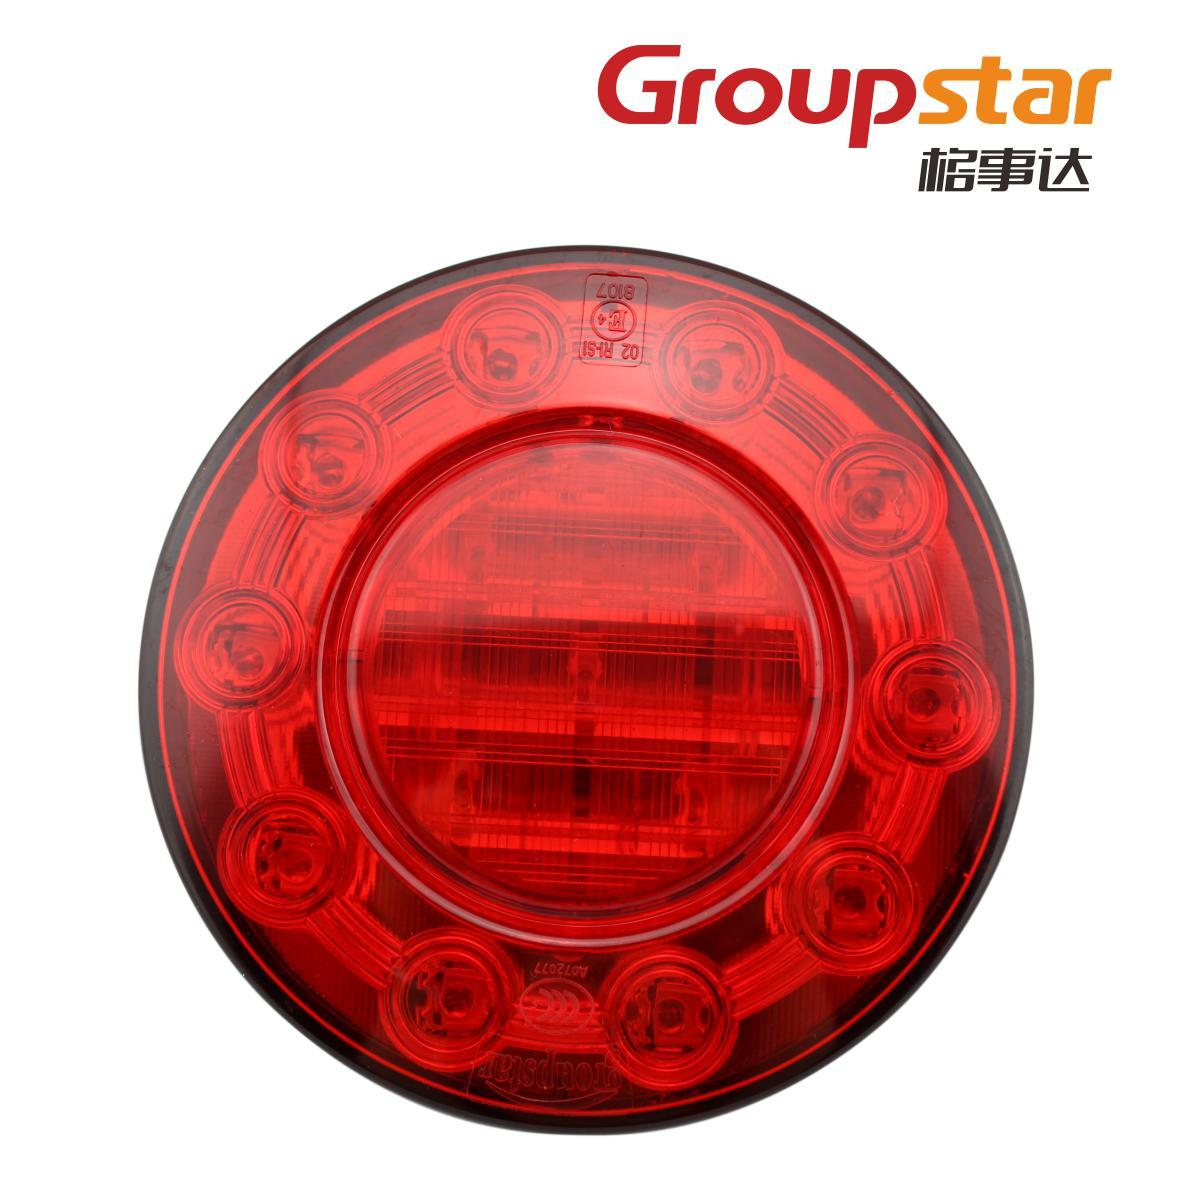 Led trailer rear light truck trailer fire truck waterproof steering lamp reversing light 3c(China (Mainland))